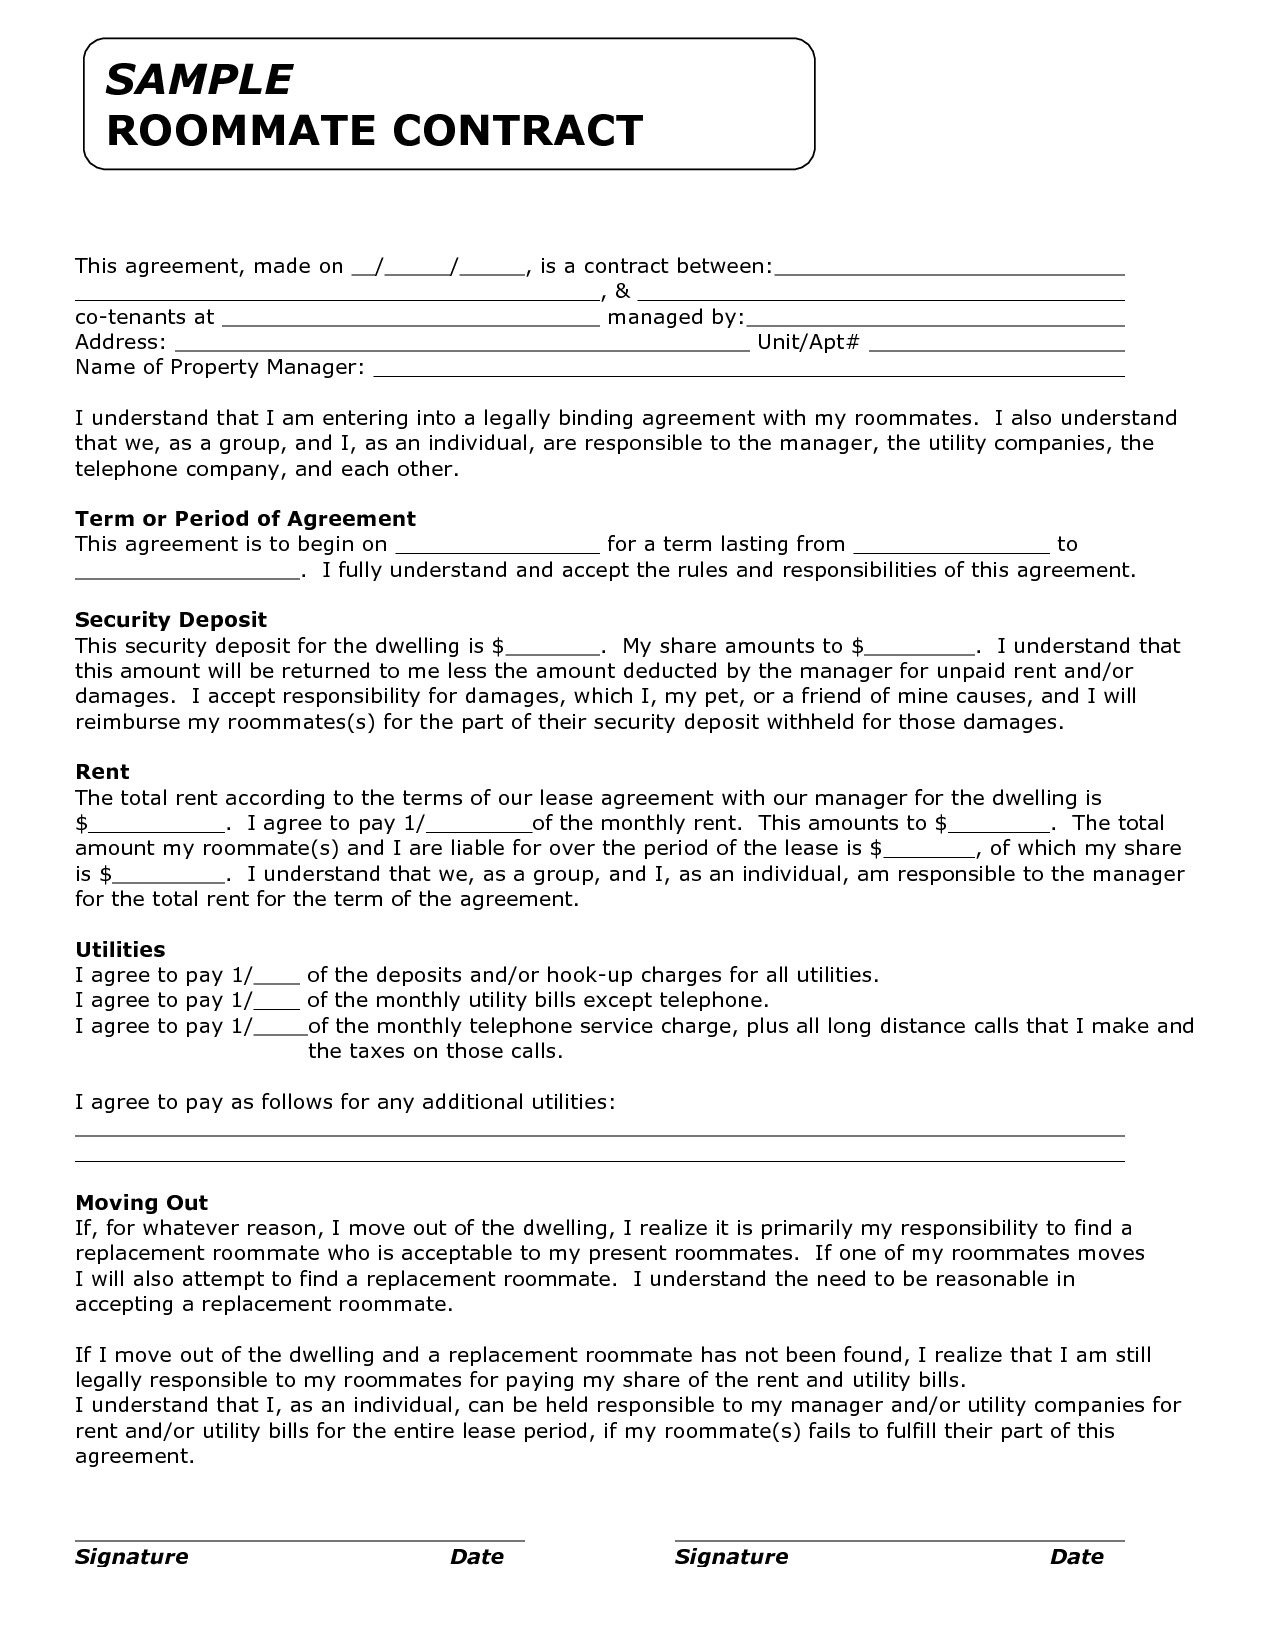 College Roommate Contract Template Template for Roommate Rules Invitation Templates